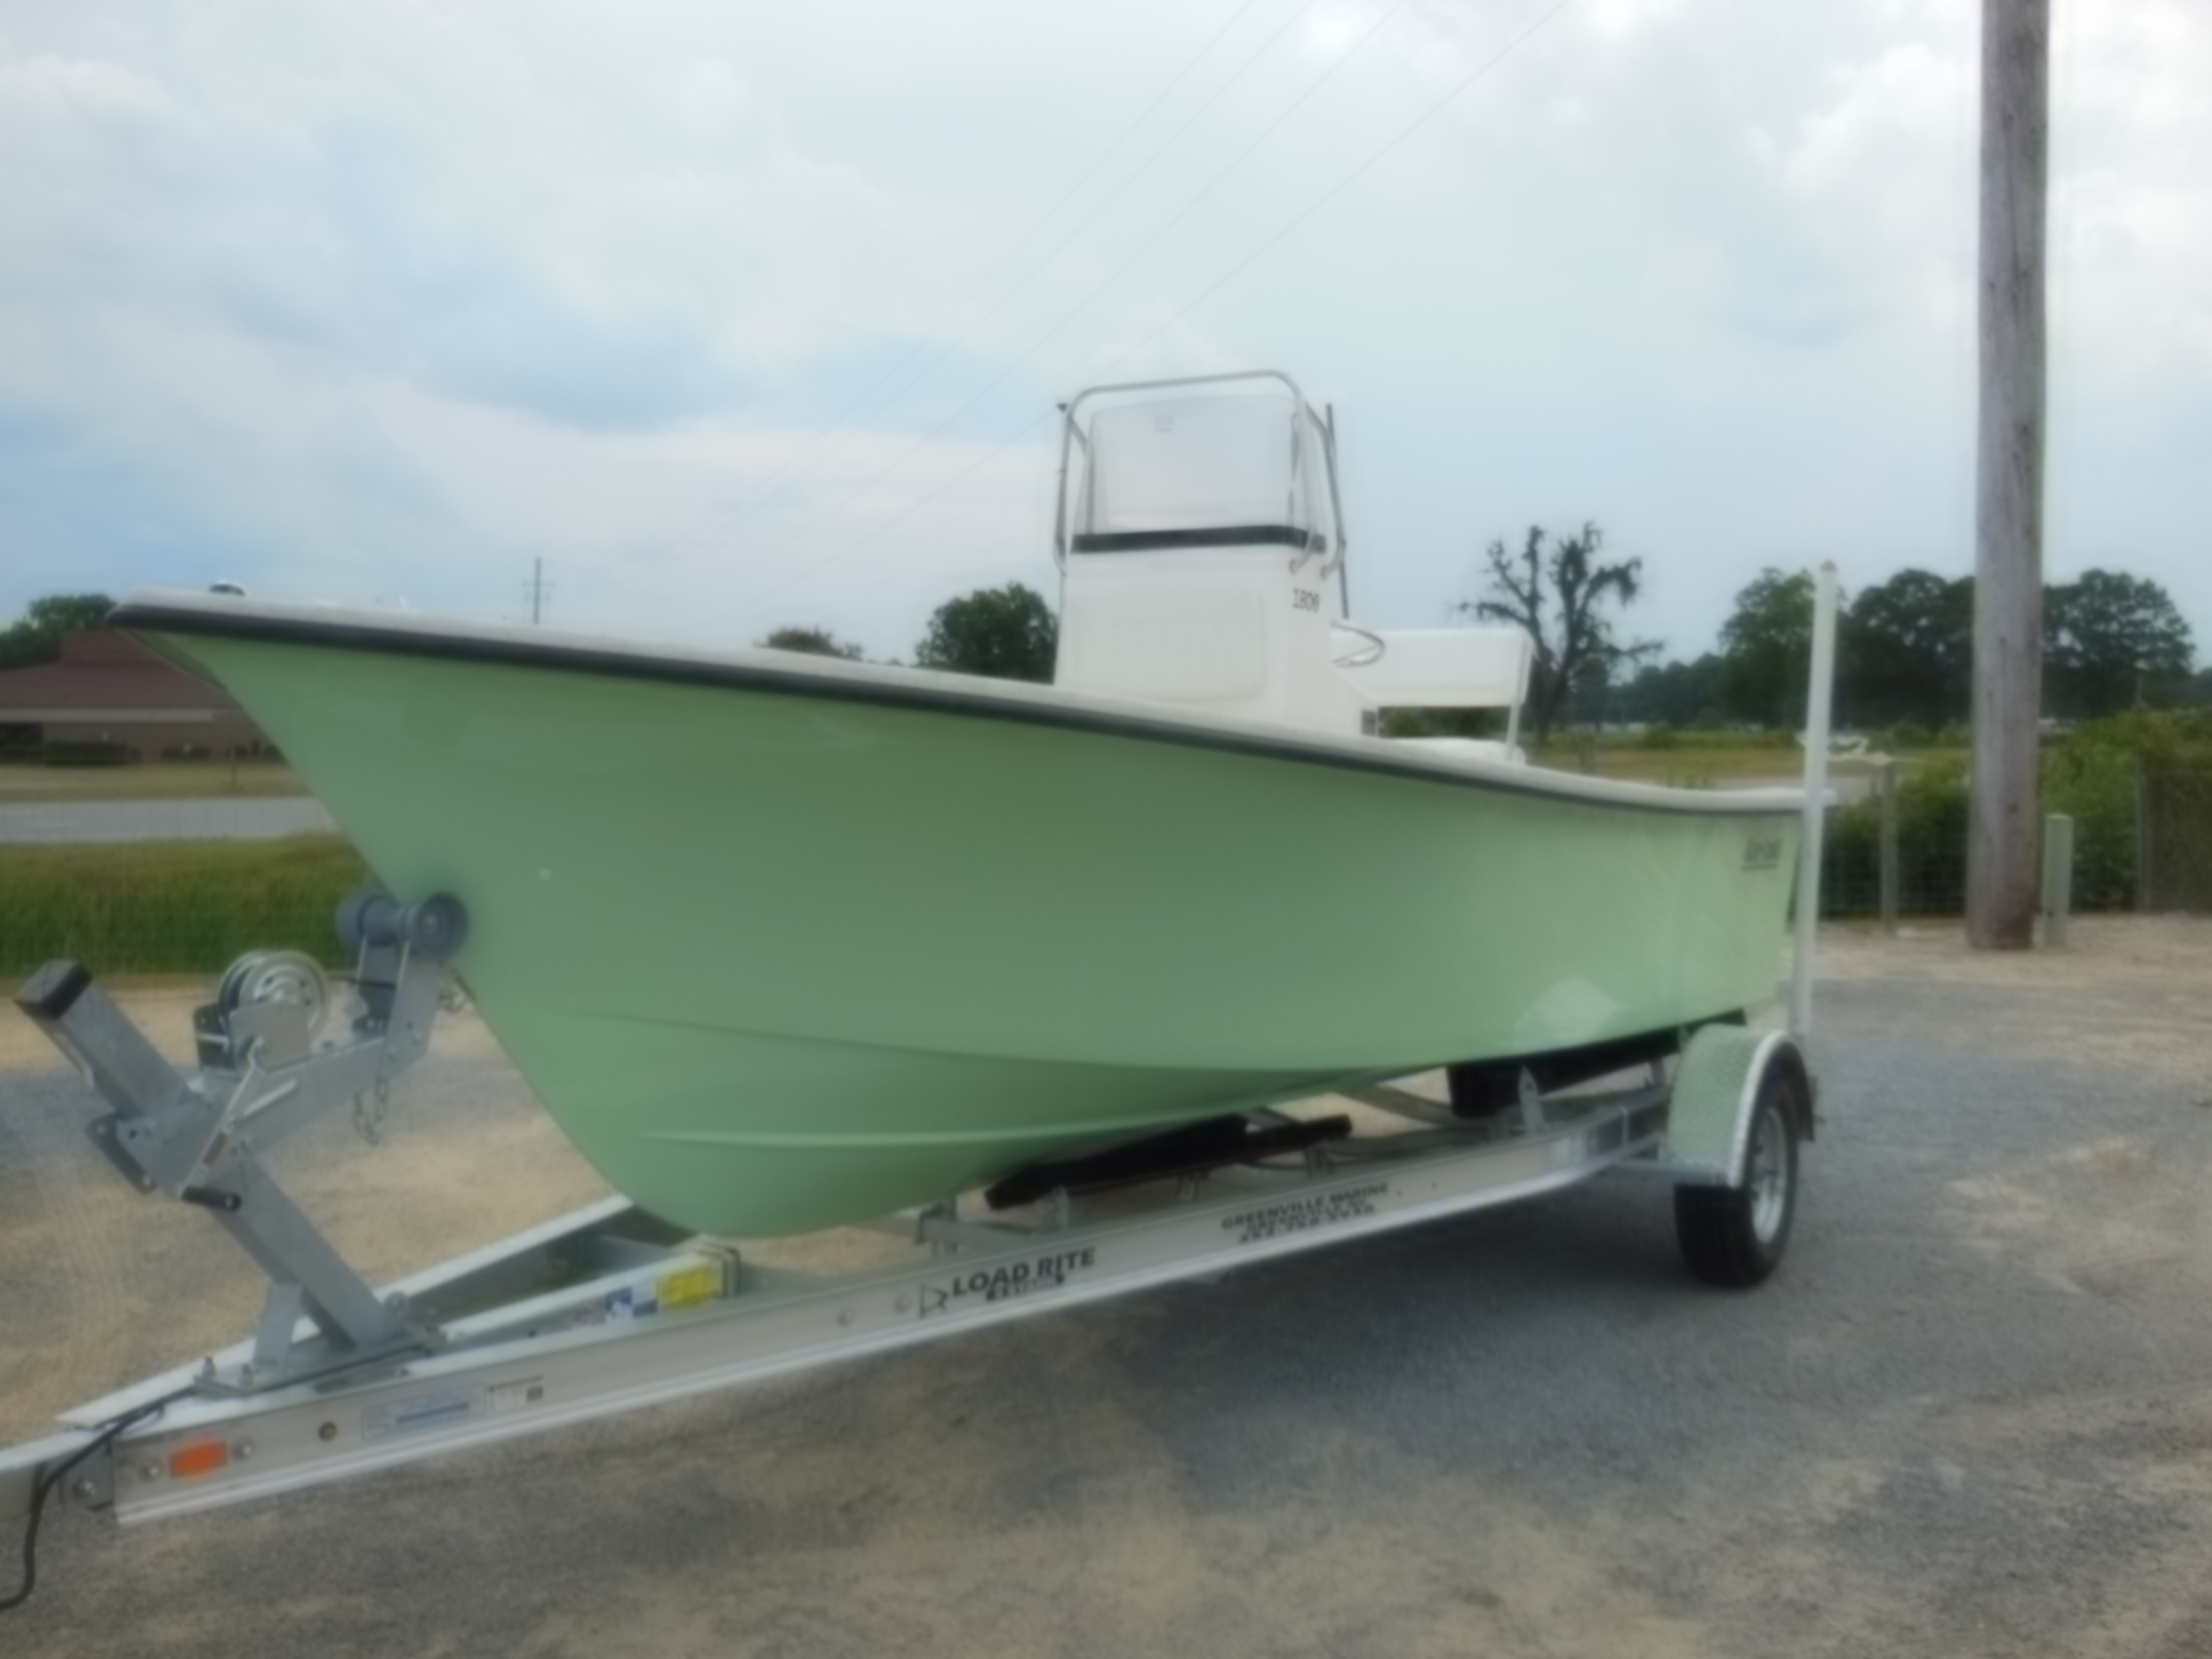 Boat inventory archives greenville marine greenville nc for Craft stores greenville nc